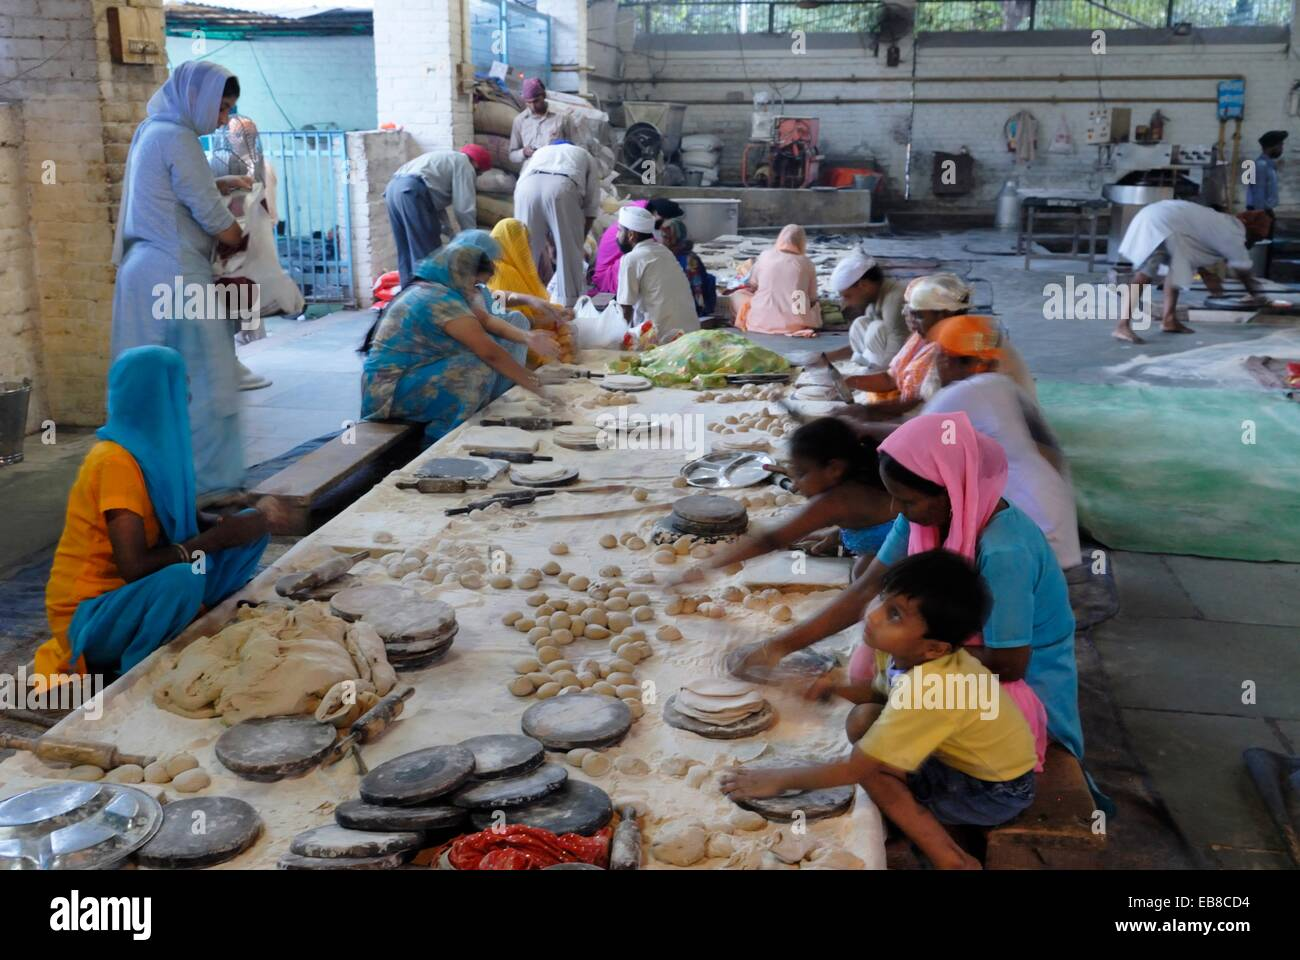 preparation chapati in the canteen called Langar where food is served in Gurdwara to all the visitors without distinction - Stock Image